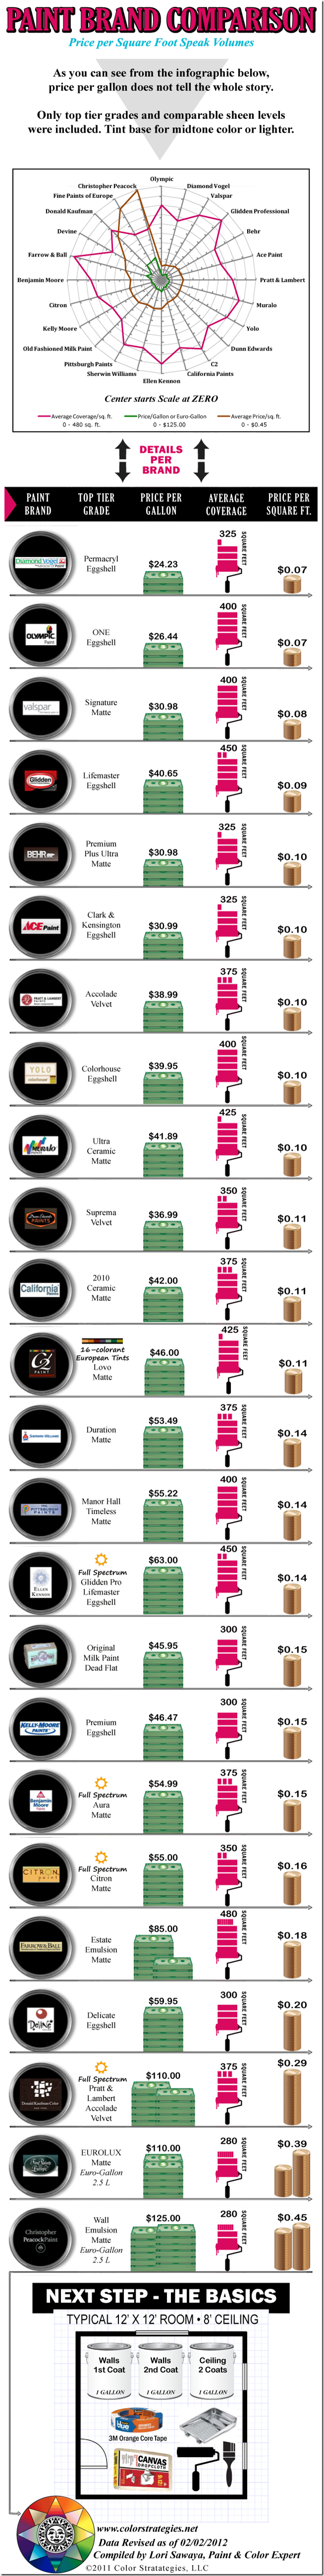 paint prices per gallon and per square foot comparison 2012. Black Bedroom Furniture Sets. Home Design Ideas